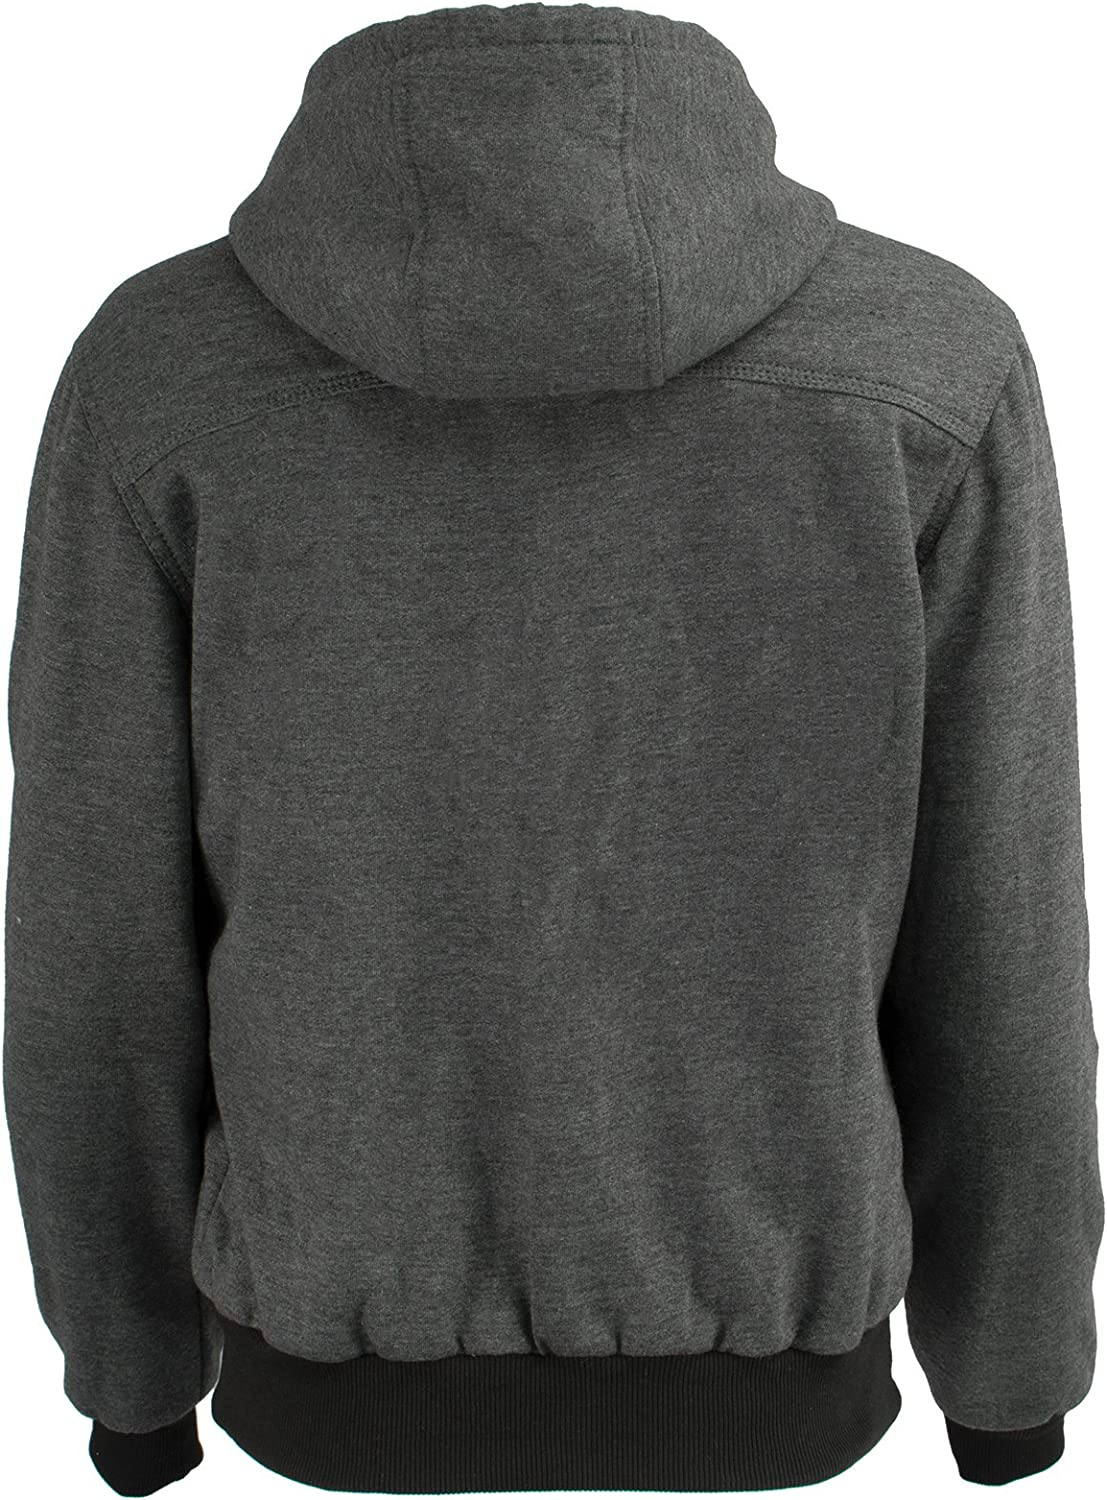 3X-Large, Black Womens Zipper Front Thermal Lined Heated Hoodie Milwaukee Performance